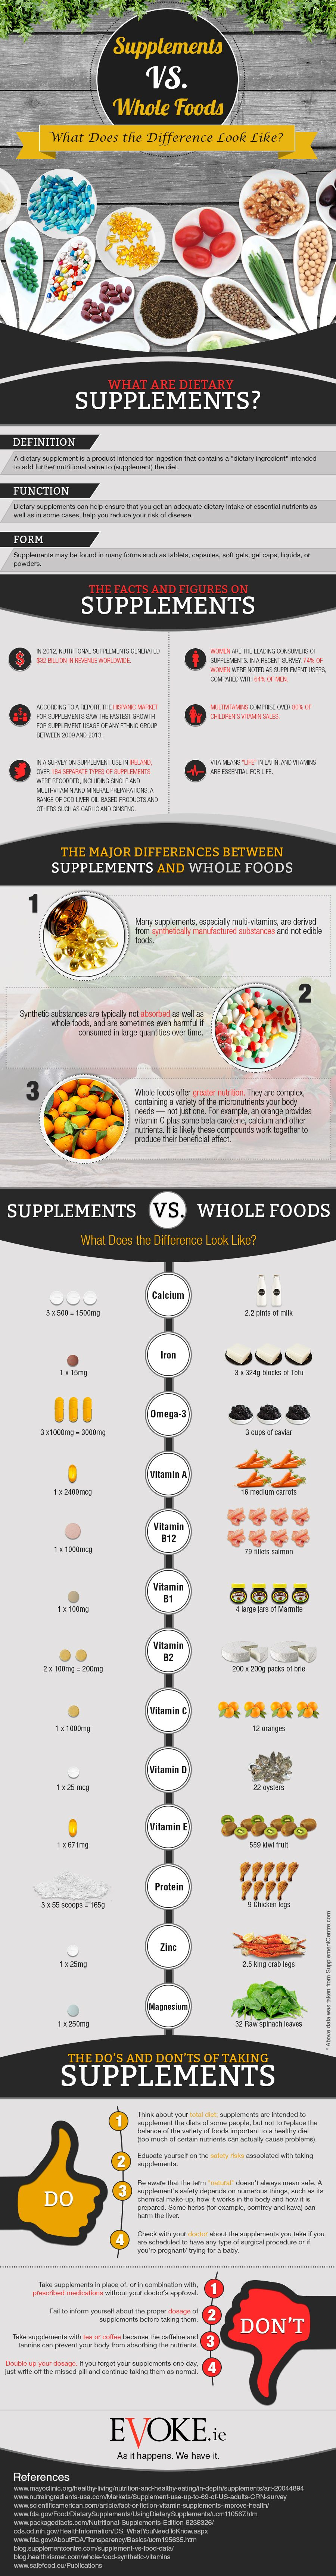 Supplements vs. Whole Foods: What Does the Difference Look Like